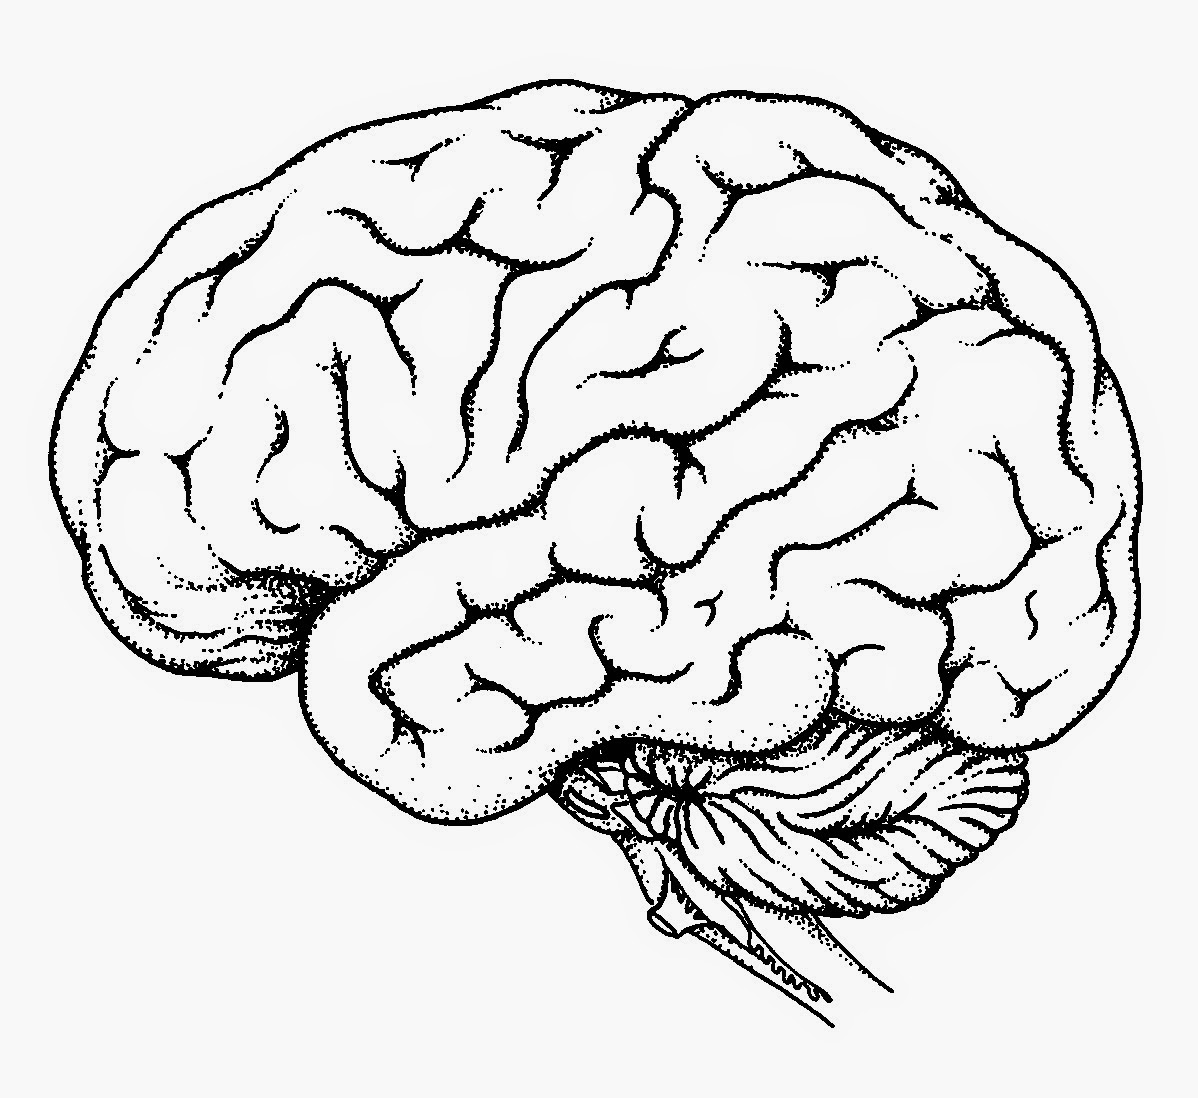 the human mind will be the The scientific research concludes the human mind is the result of the brain activities and has a conscious as well as a subconscious side the philosophy of mind is a branch of philosophy that deals with the nature of the thoughts and experiences of humans.